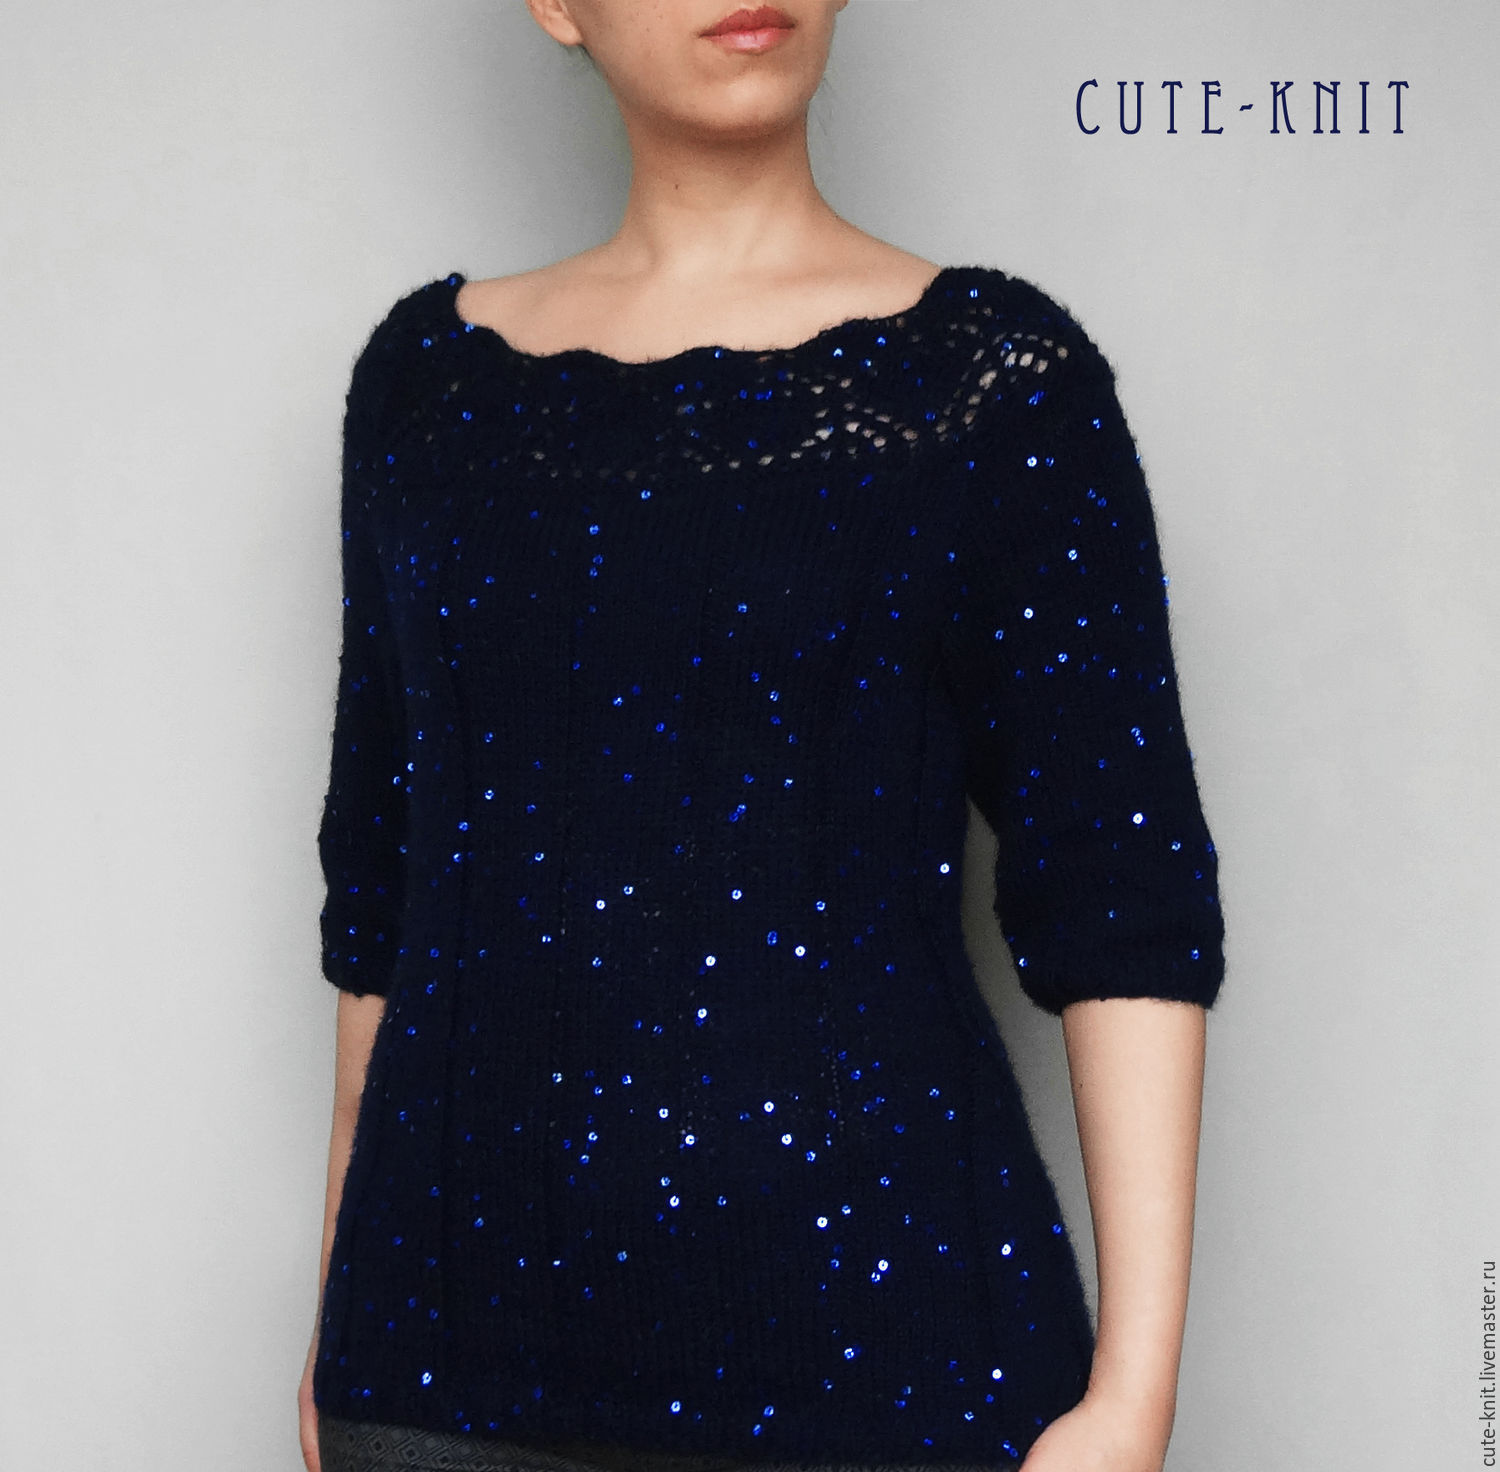 To better visualize the model, click on the photo. CUTE-KNIT NAT Onipchenko Fair masters Buy elegant blouse blue